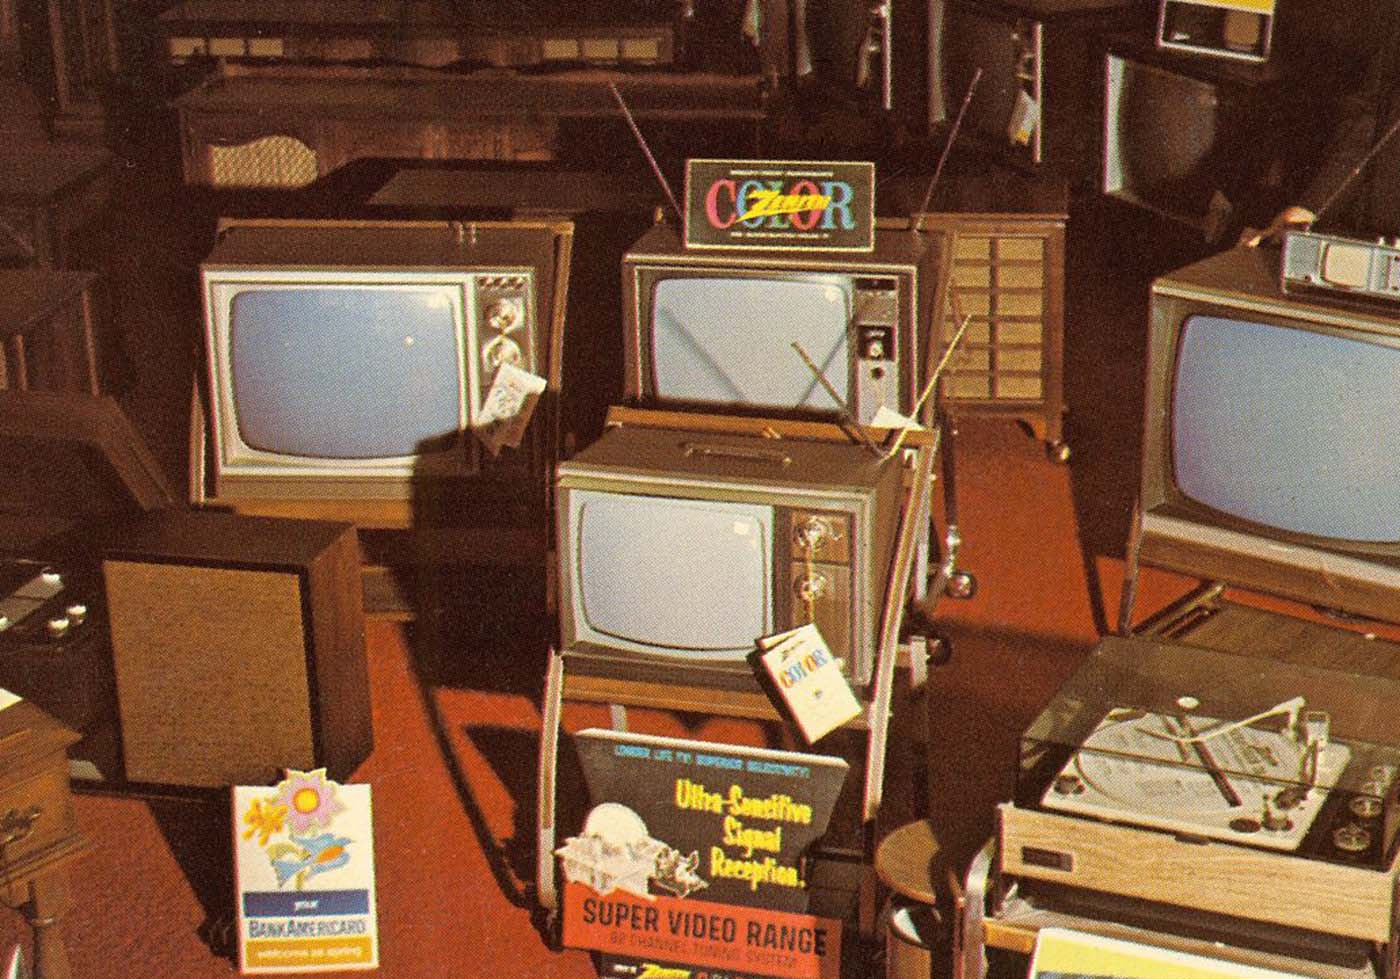 How exactly were color TVs advertised on black and white sets?